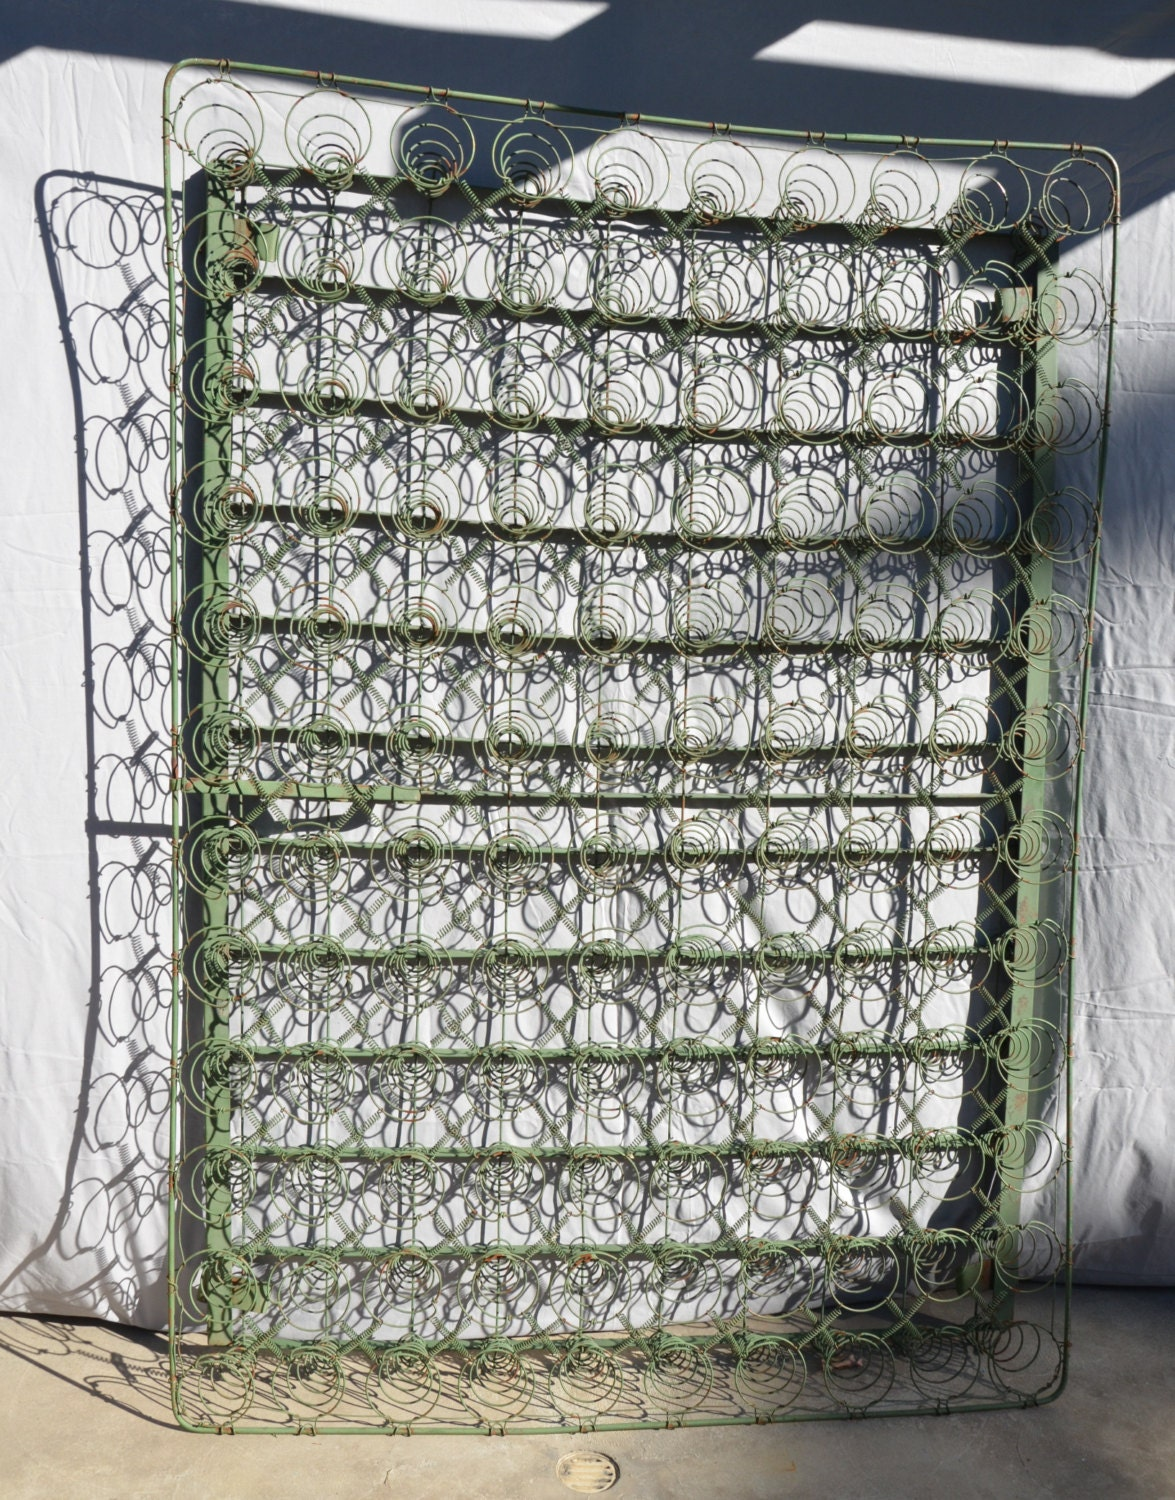 Antique Iron Bed Frame With Springs : Vintage antique s industrial green metal coil springs